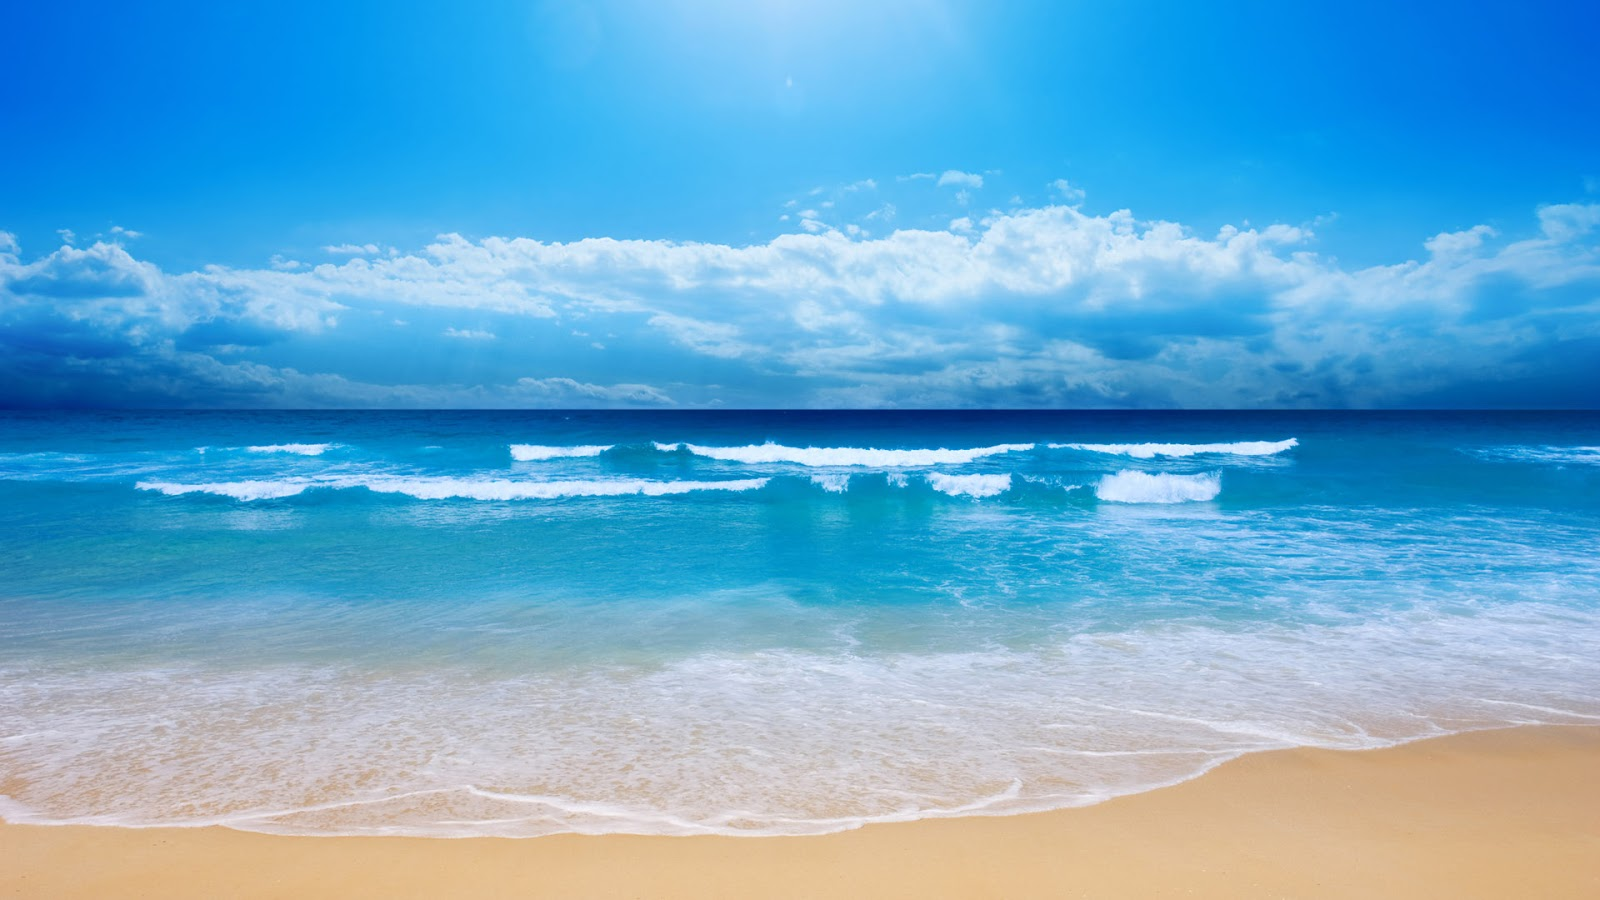 Pictures Wallpapers beach wallpaper